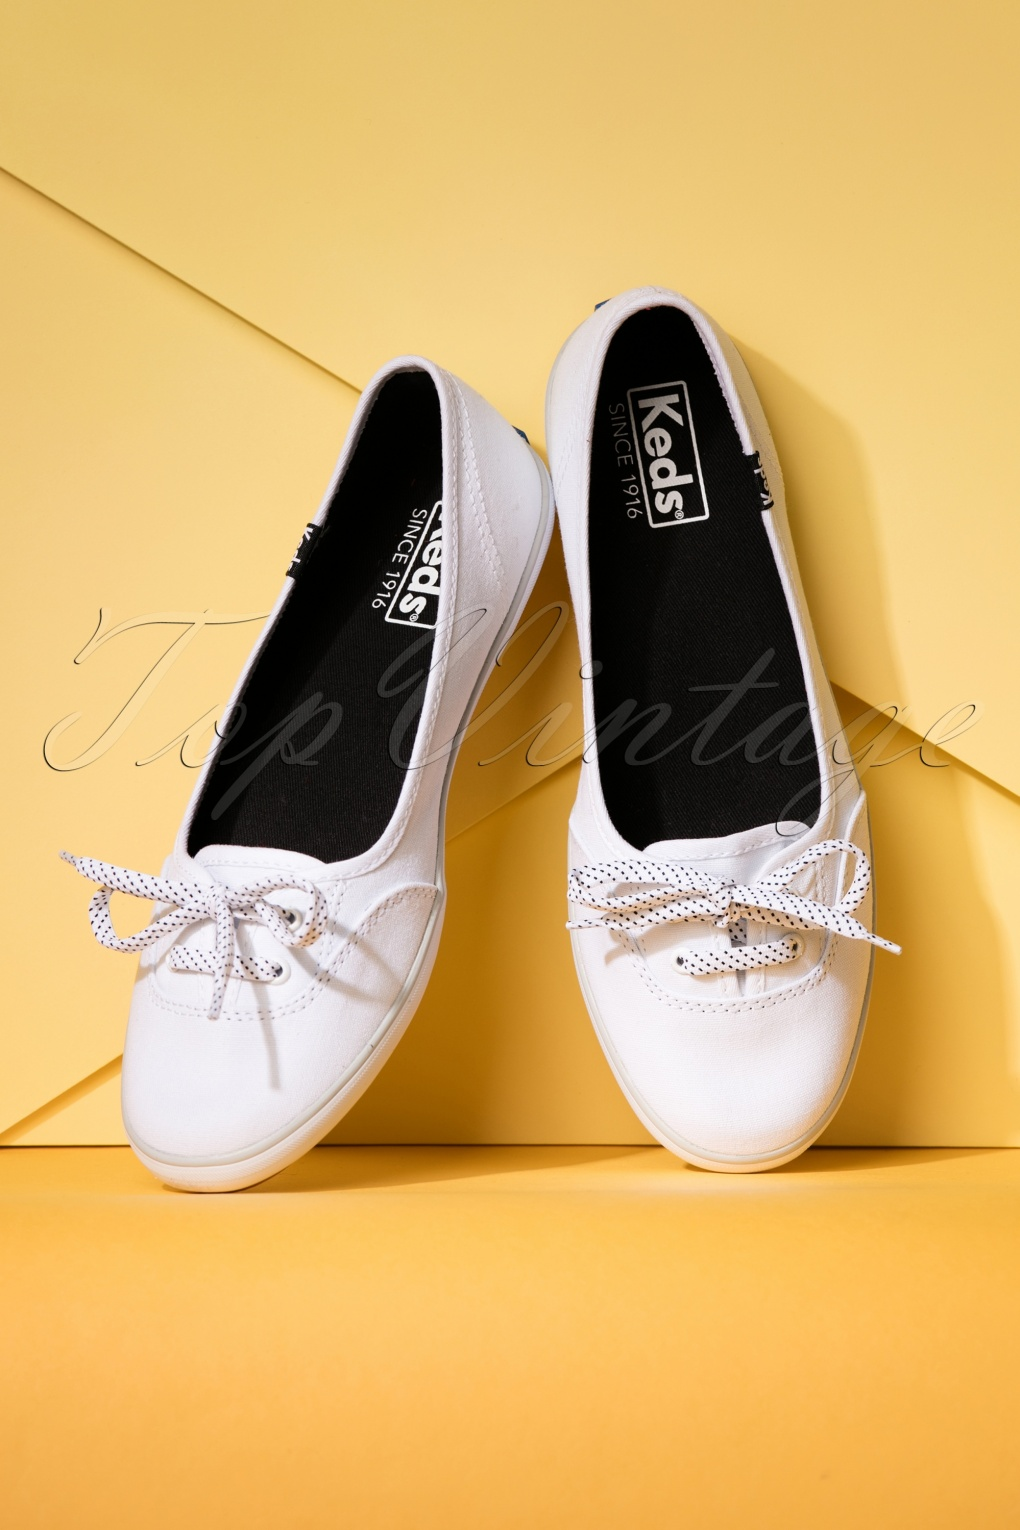 1950s Style Shoes 50s Teacup Canvas Sneakers in White £52.73 AT vintagedancer.com